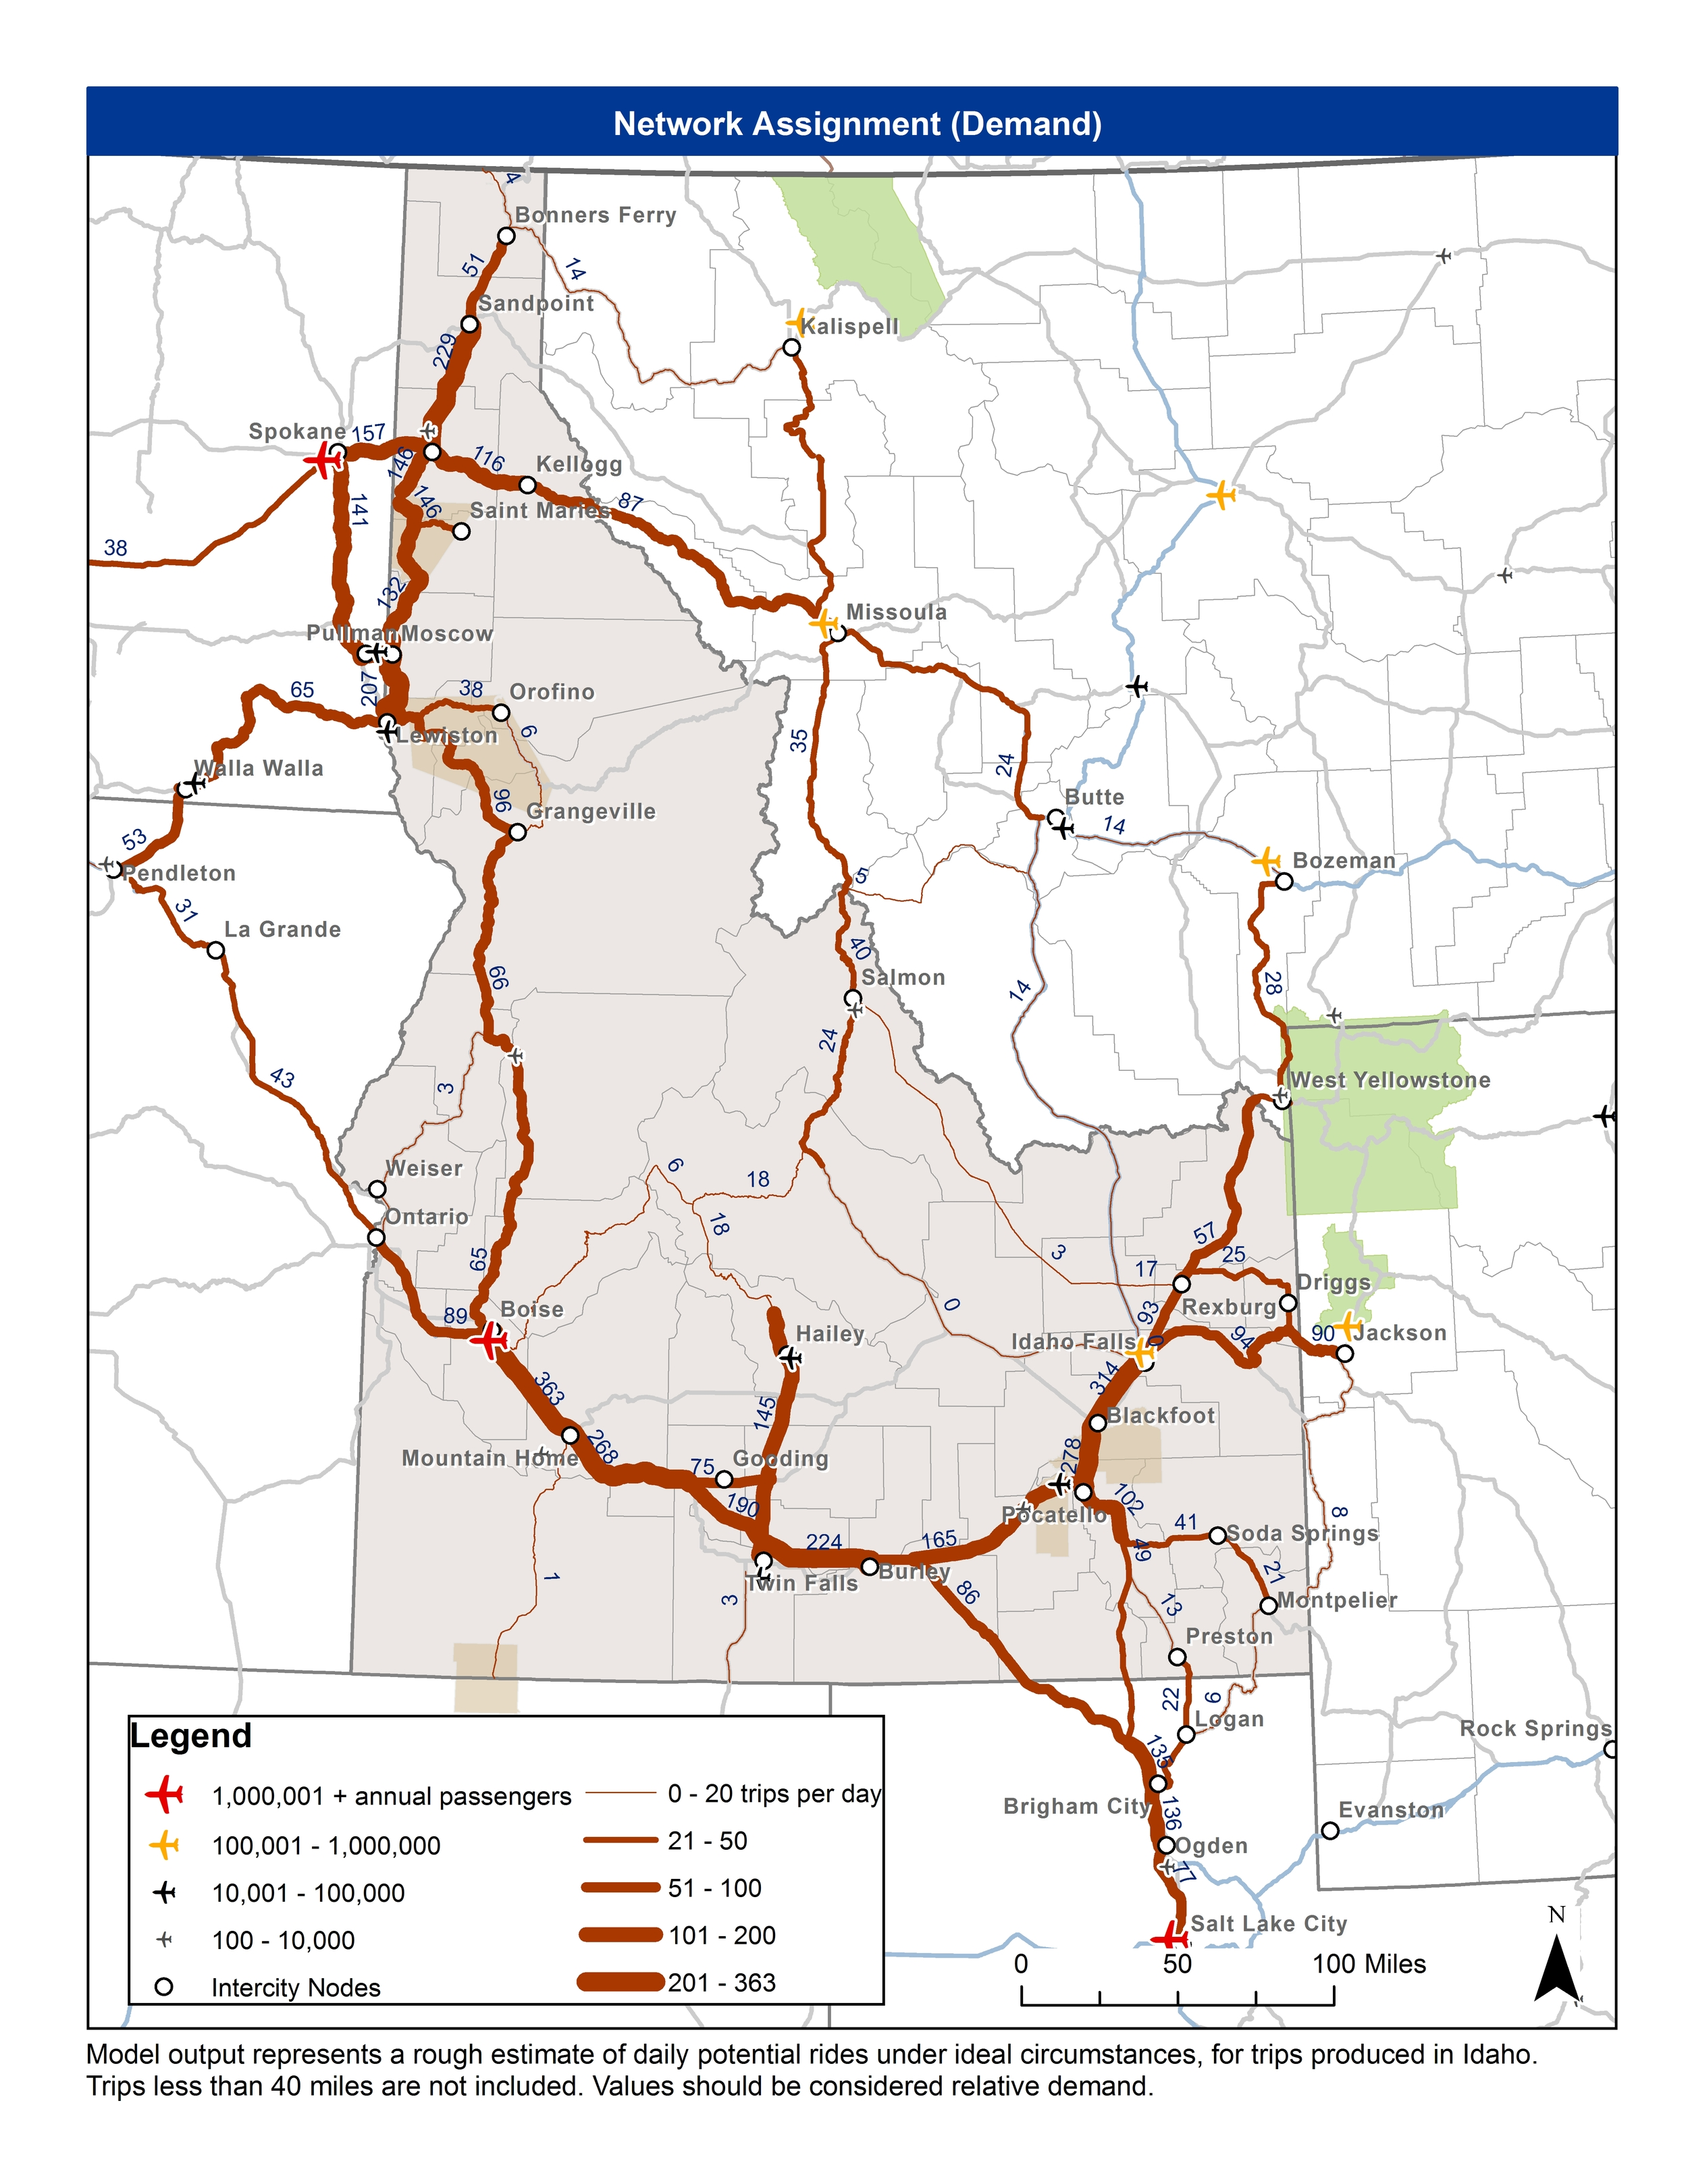 Demand modelling estimate of potential daily rides under ideal circumstances for trips produced in Idaho.